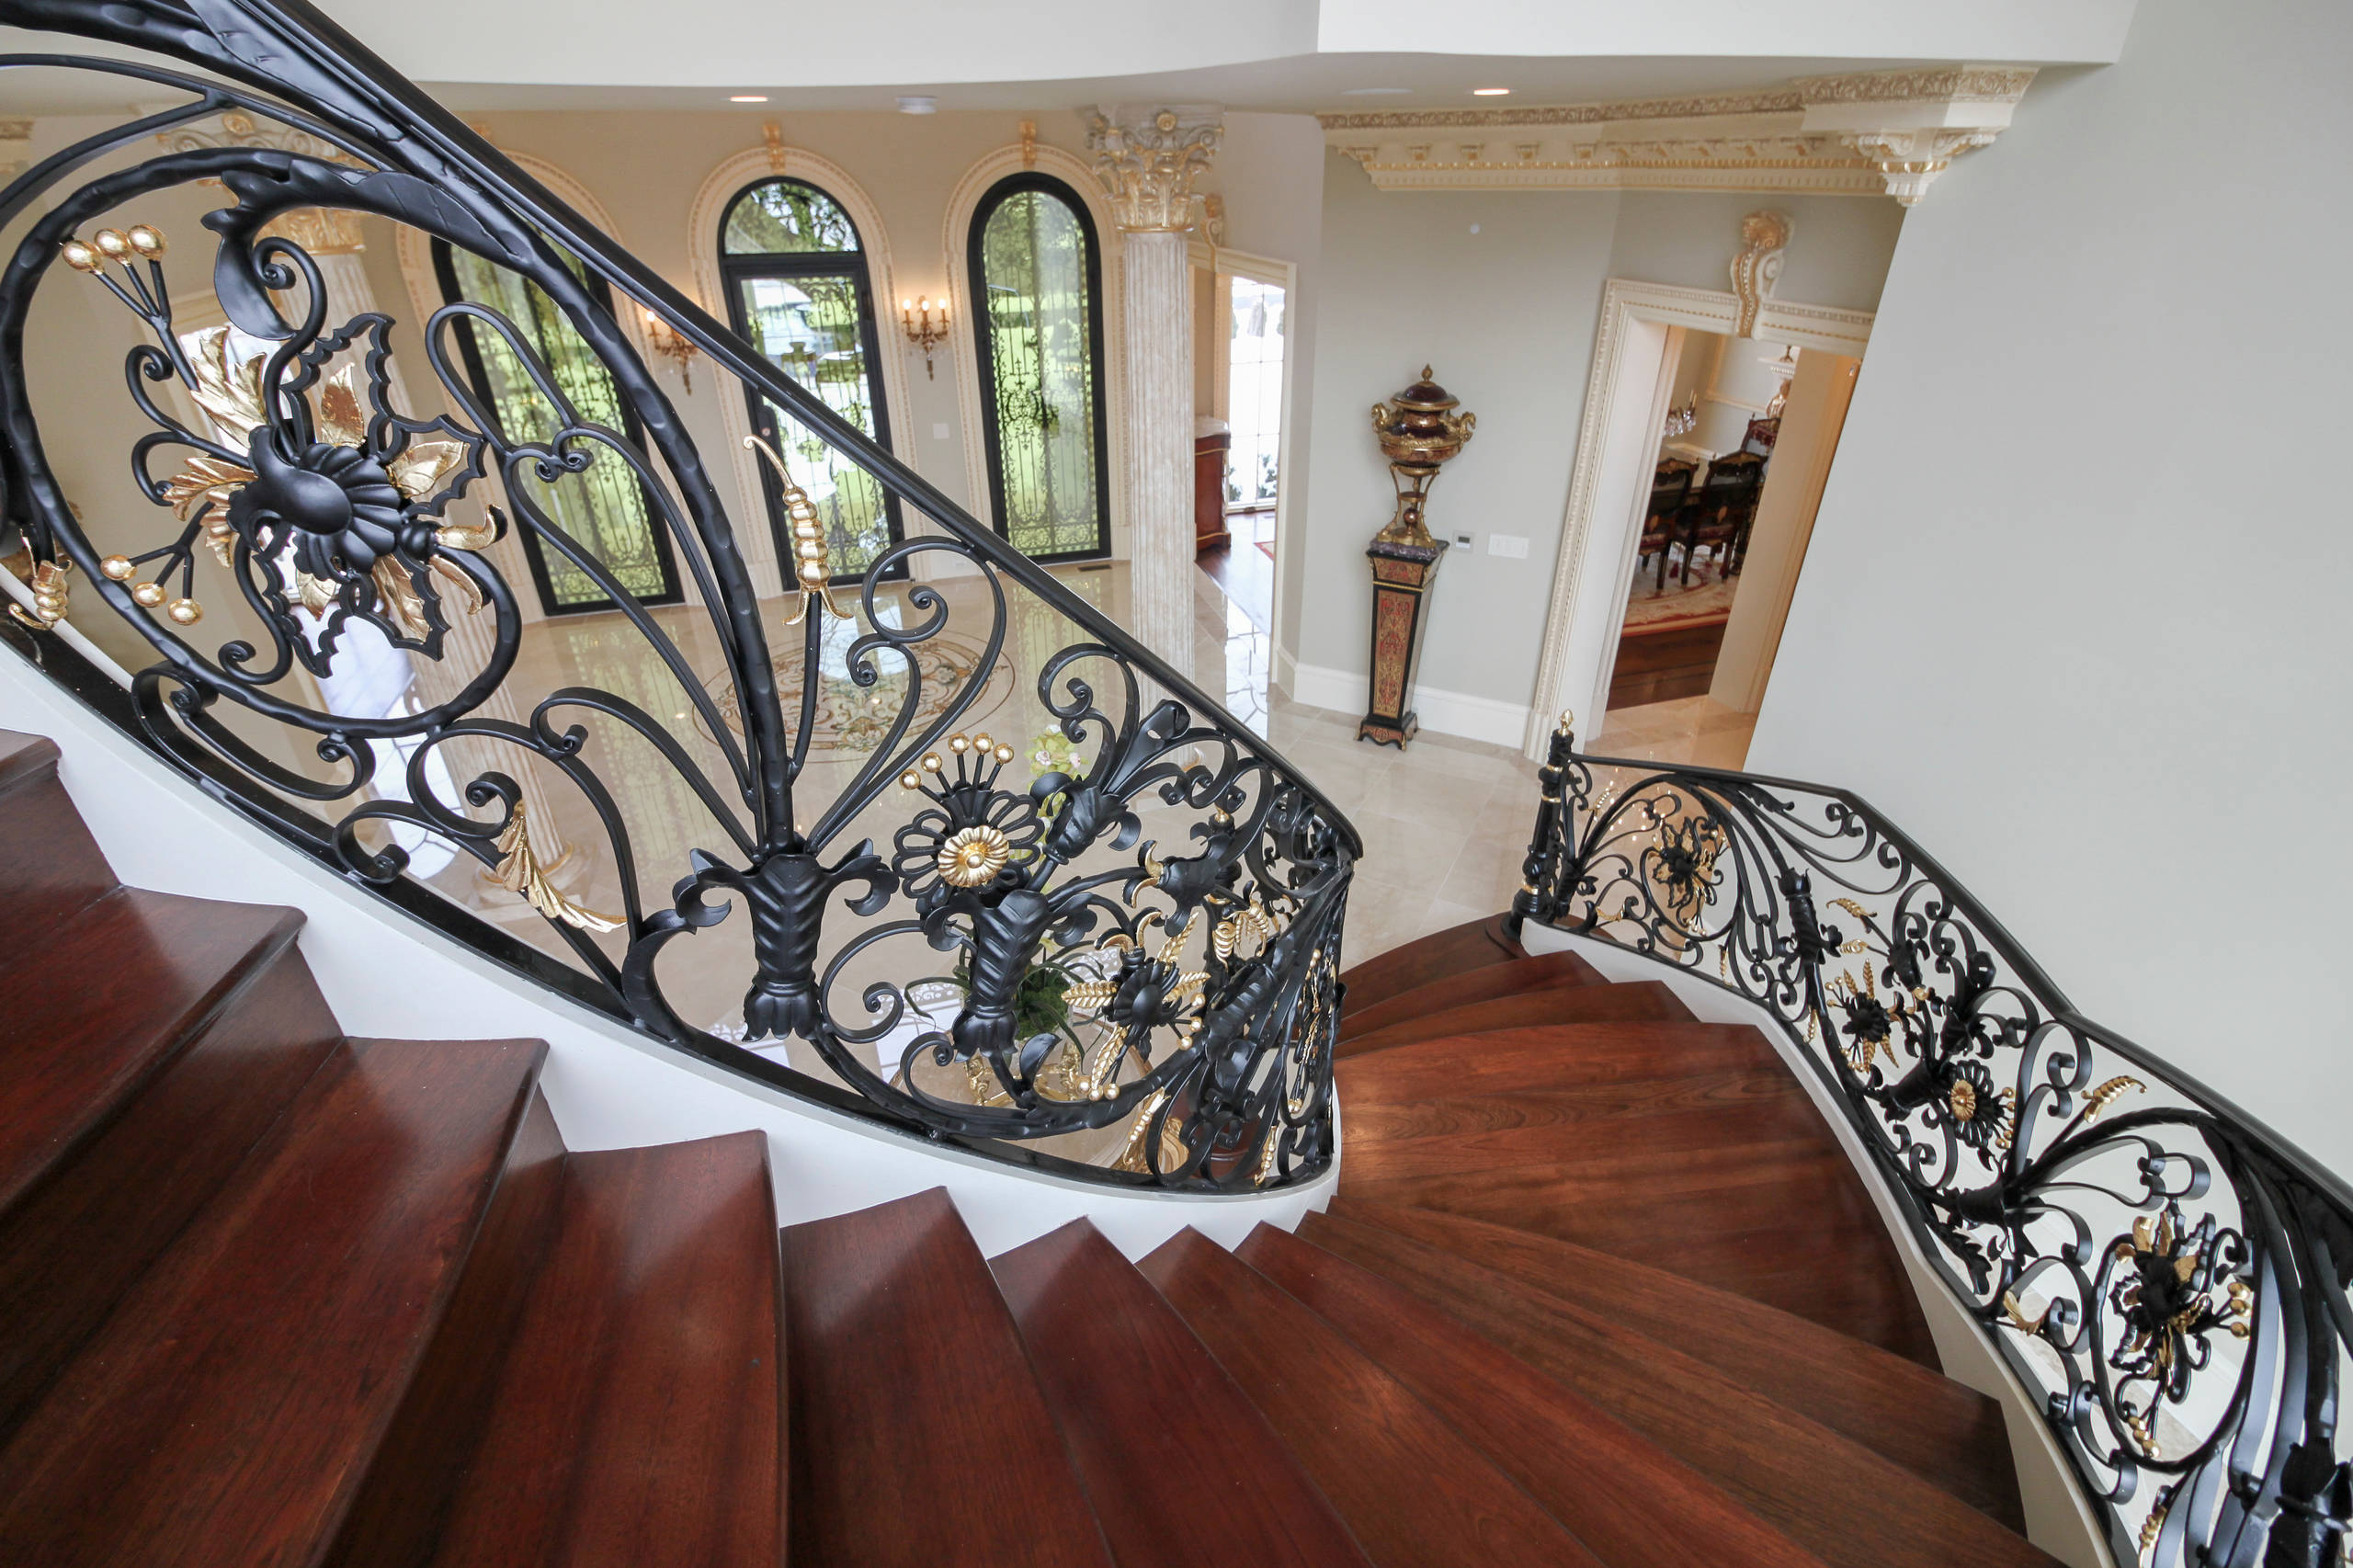 63_Sophisticated Grand Staircase, Great Falls VA 22066